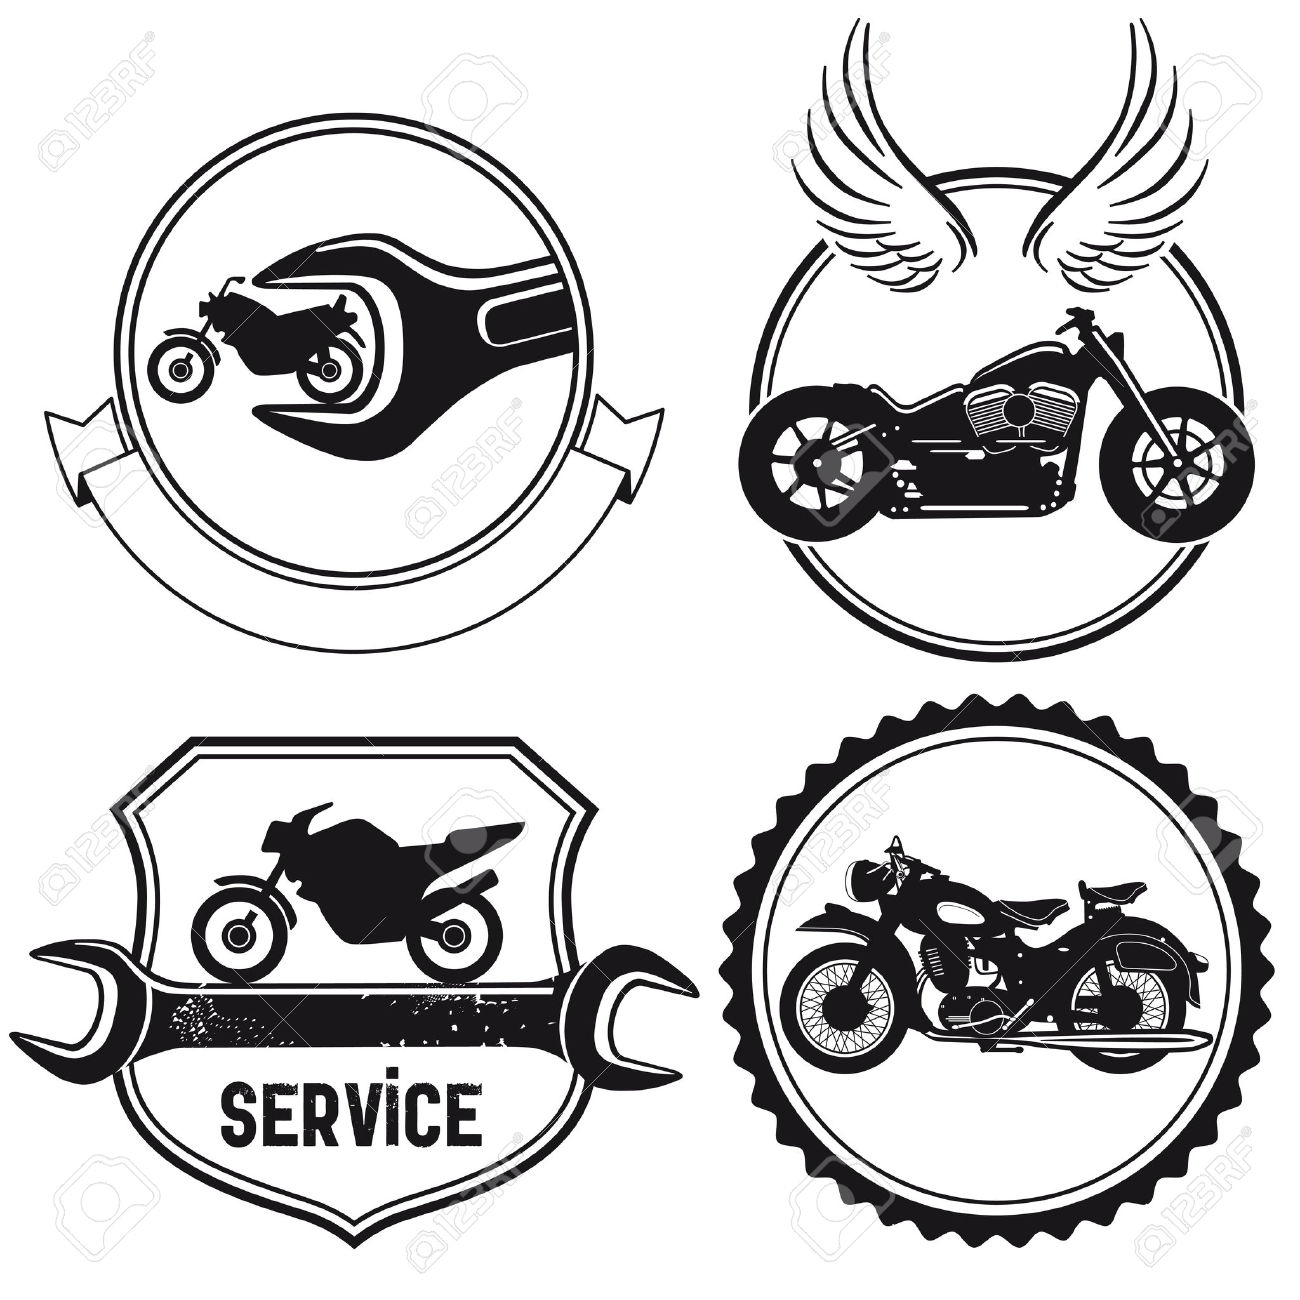 Motorcycle clipart motorcycle shop. Free service cliparts download